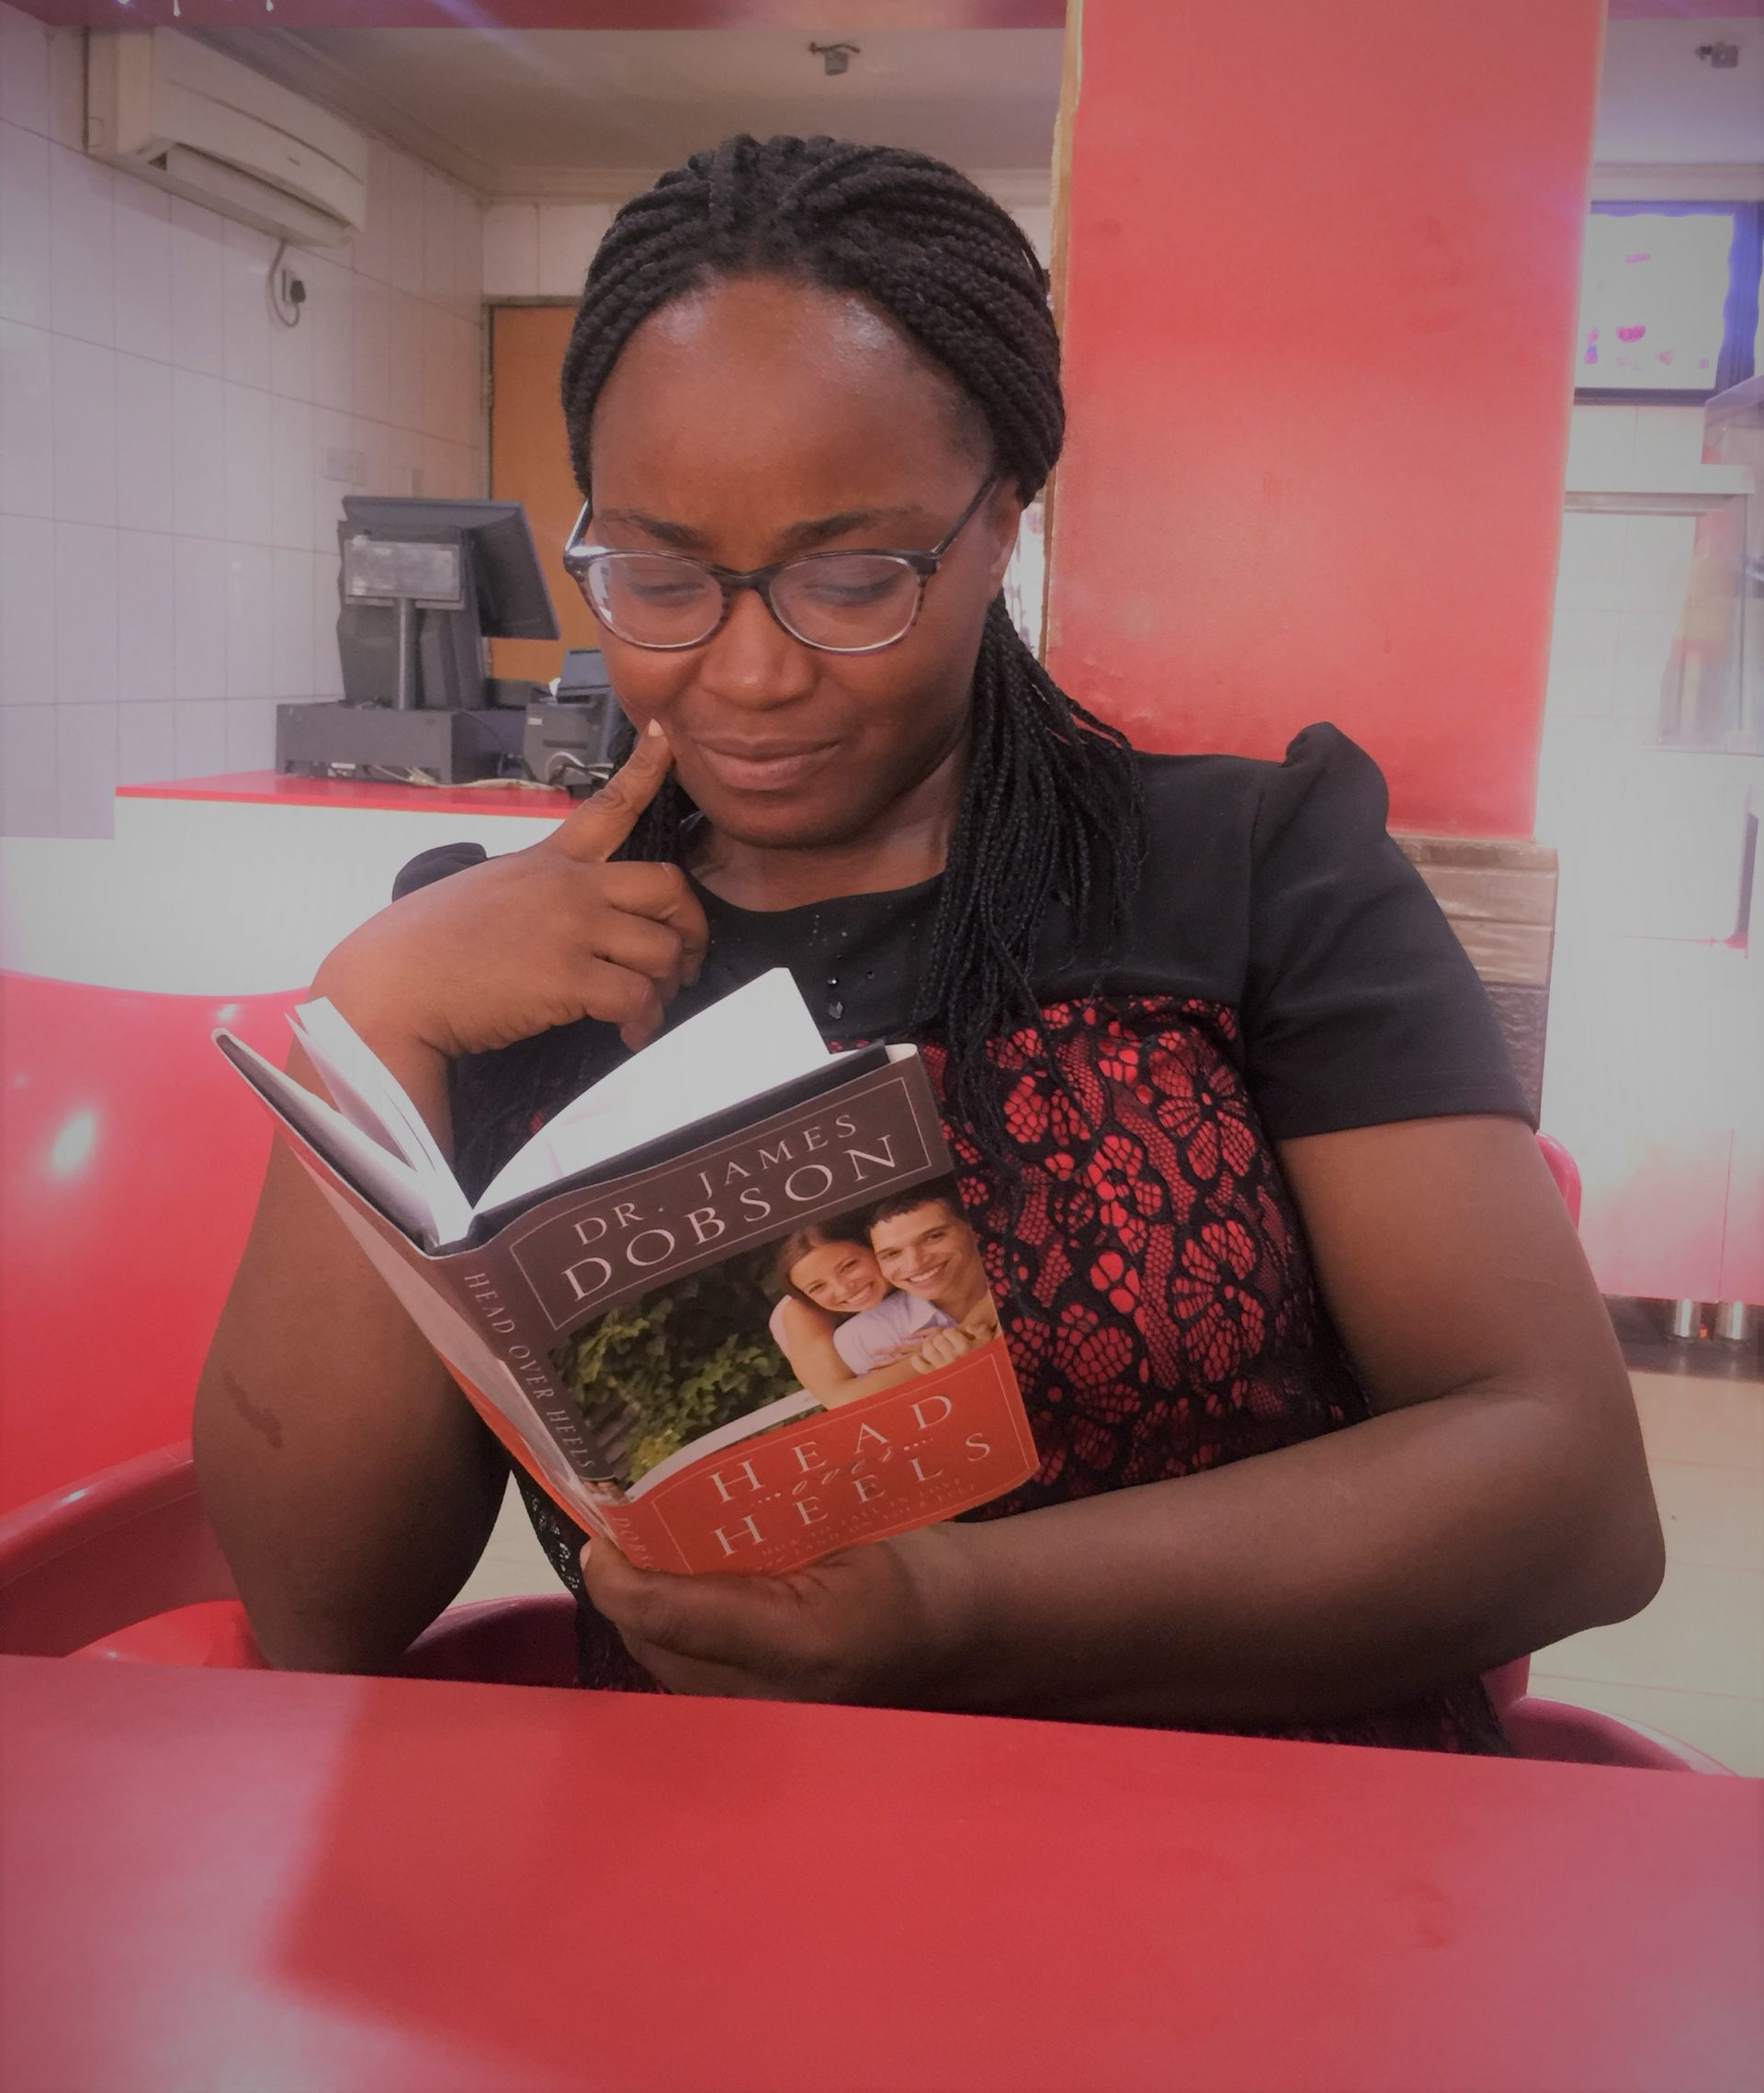 I MUST GET TO THE TOP- A GLASS OF IFE GRACE